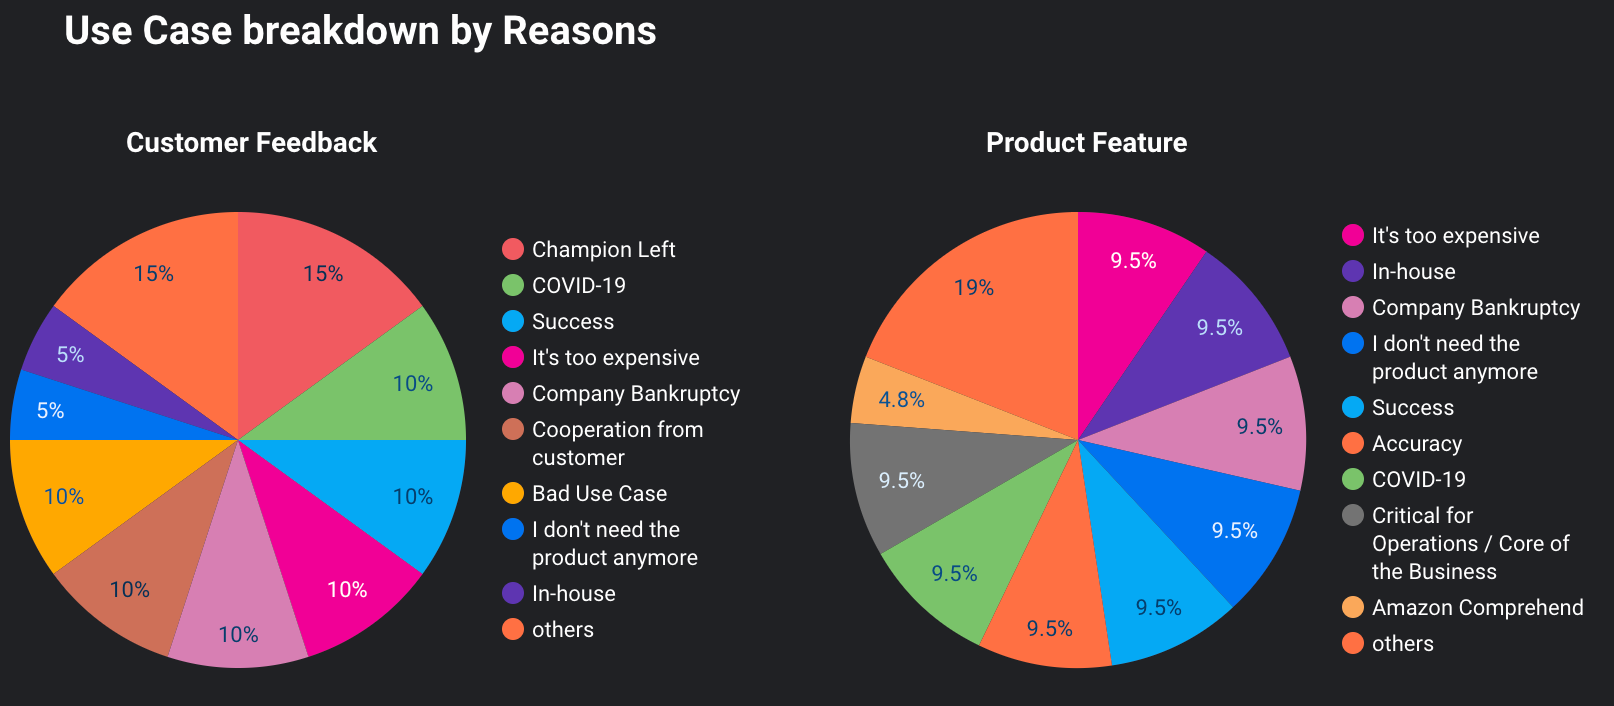 Customer churn analysis showing why customers left by Use Case breakdowns: Customer Feedback and Product Feature.